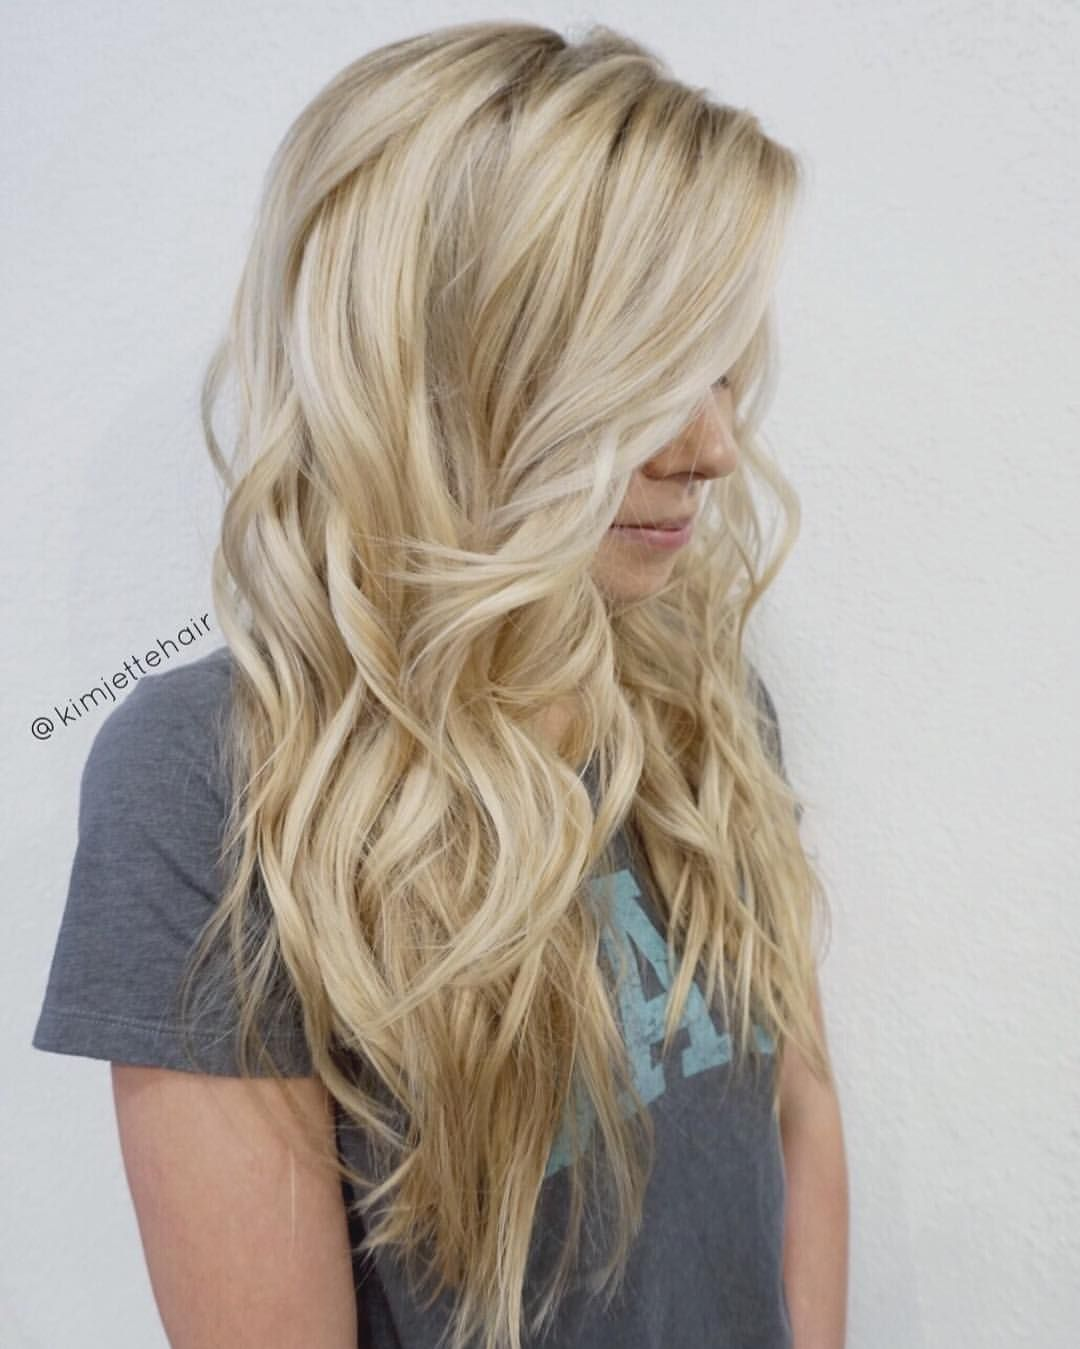 Women Hairstyles Messy Beach Blonde Hair Colorist And Blonde Balayage